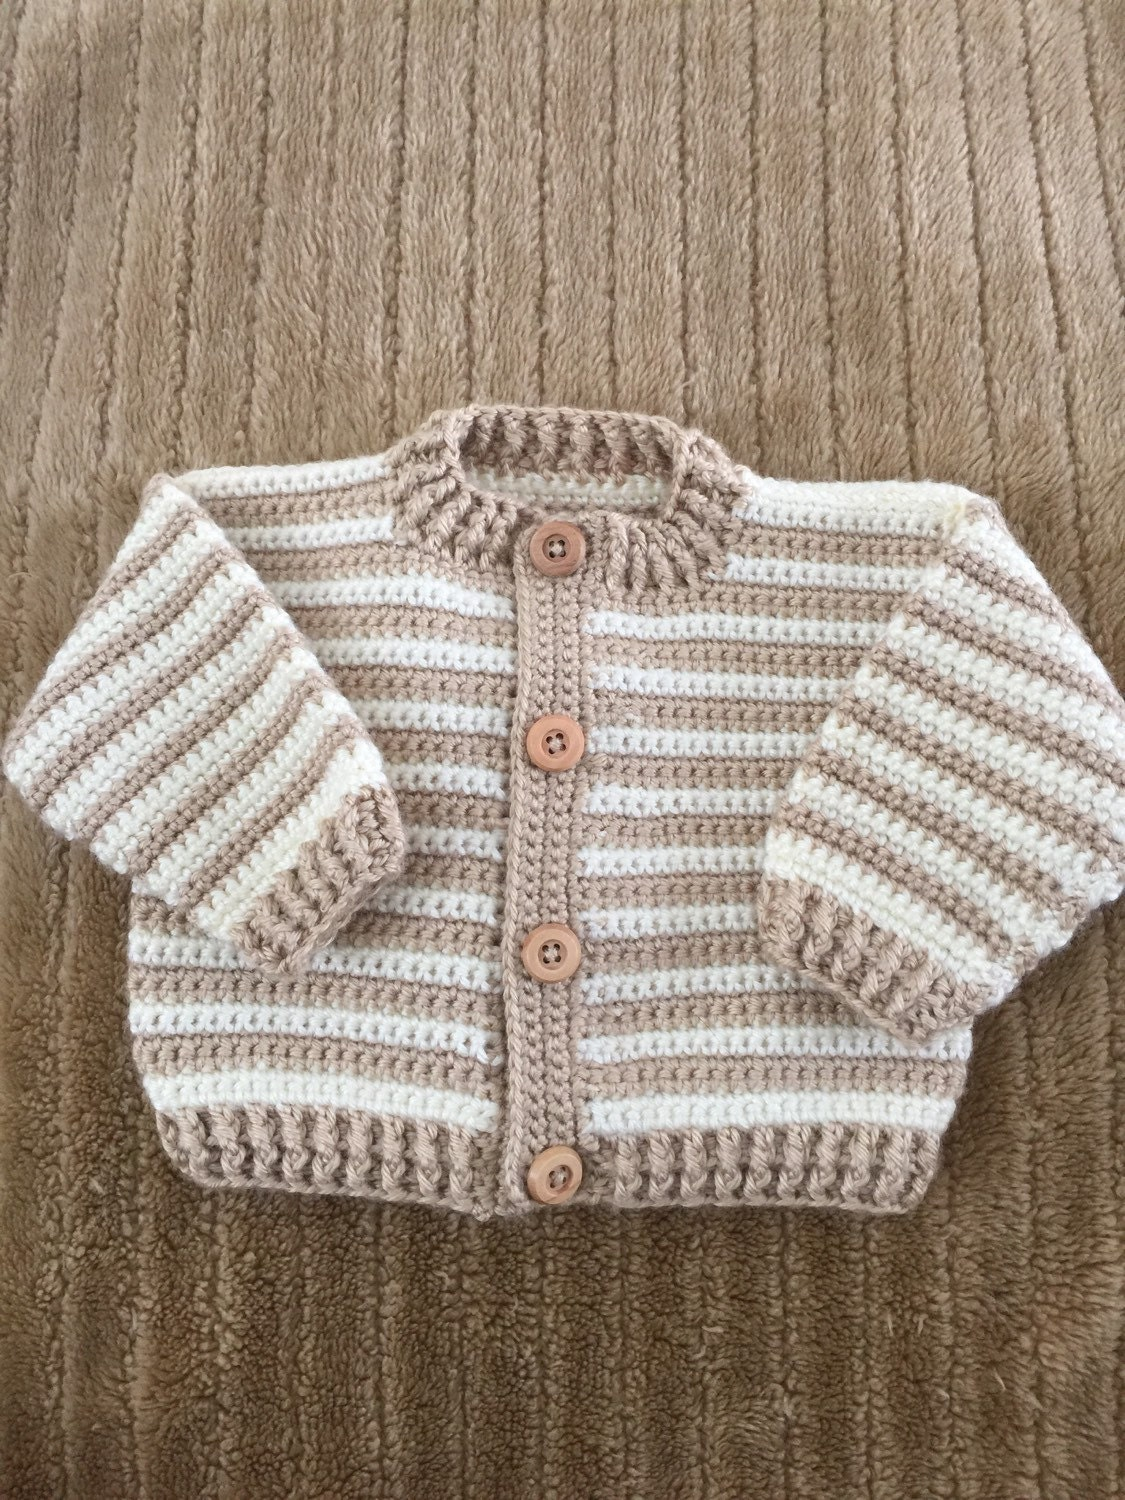 You've searched for Baby Boys' Sweaters! Etsy has thousands of unique options to choose from, like handmade goods, vintage finds, and one-of-a-kind gifts. Our global marketplace of sellers can help you find extraordinary items at any price range.